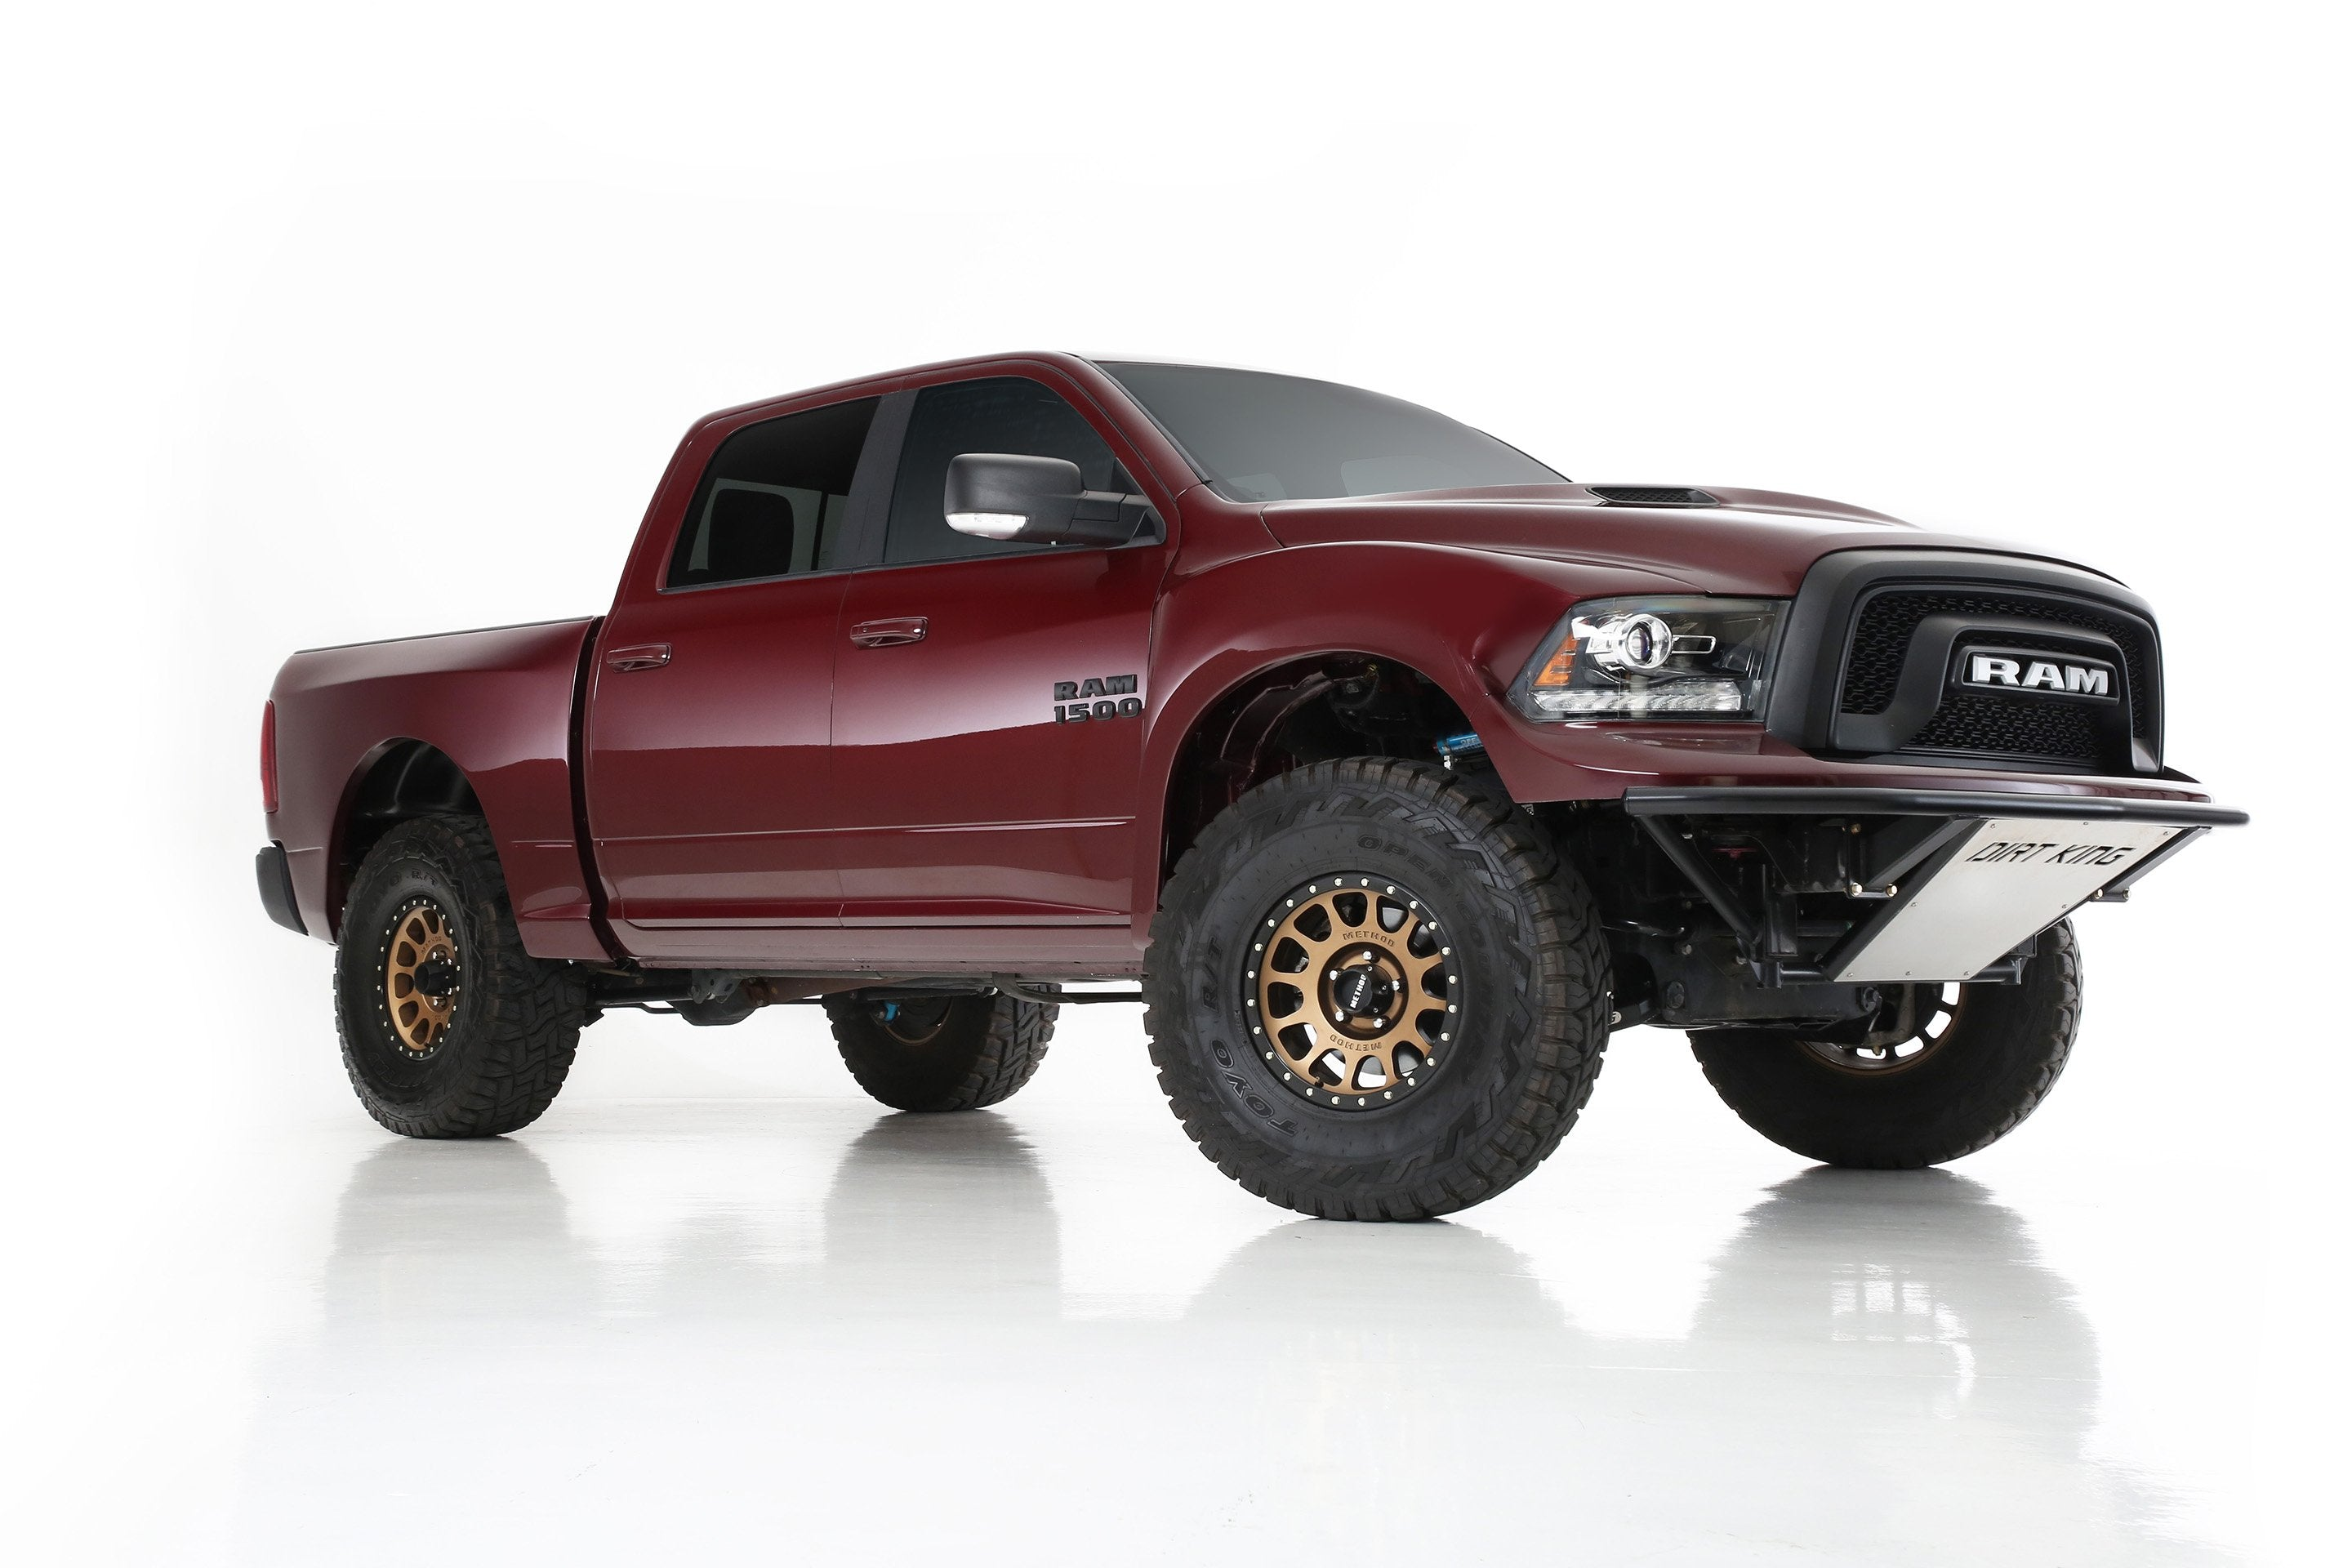 2009-2018 Dodge Ram Bedsides - Flat Top